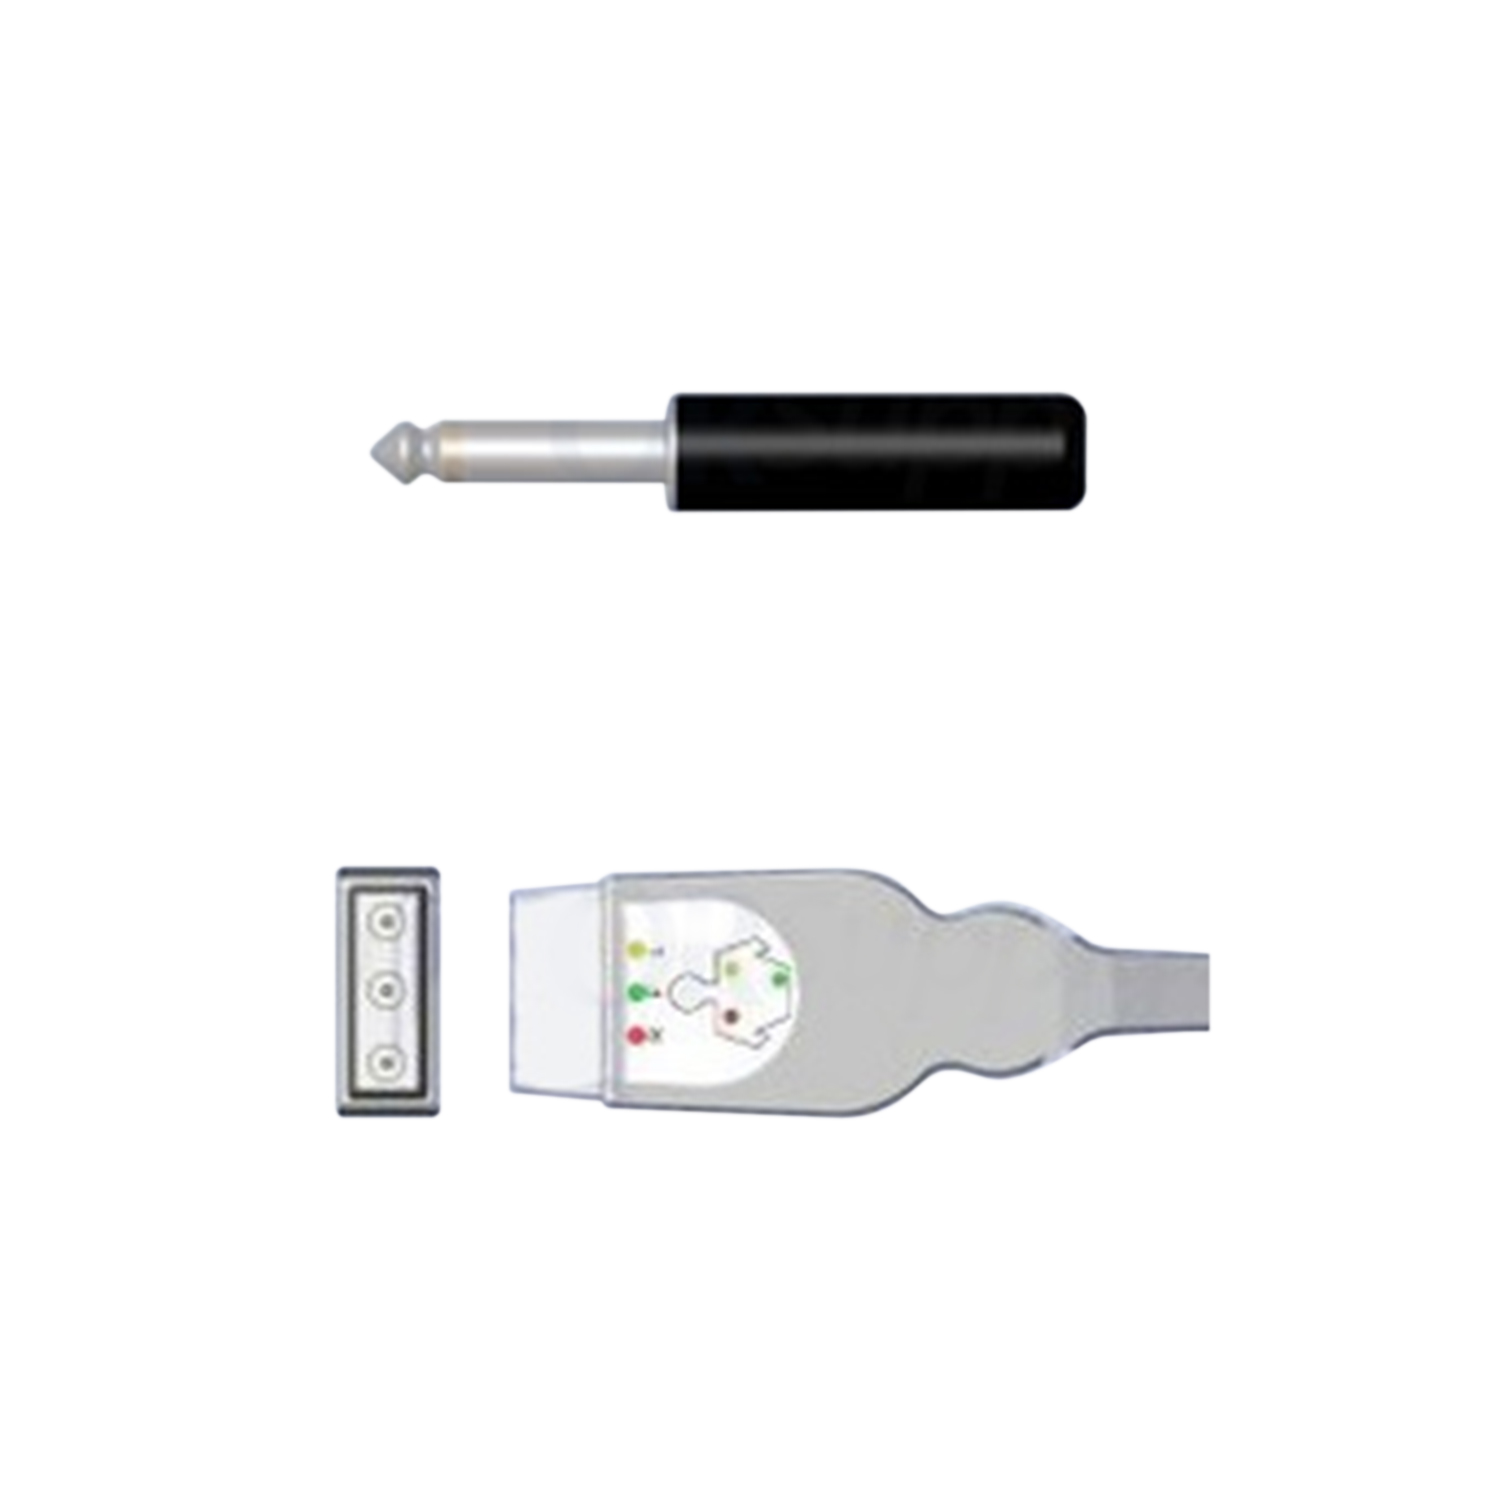 Medtronic Physio-Control ECG Cable for Lifepak Defibrillators, 3-Lead IEC Safety Din